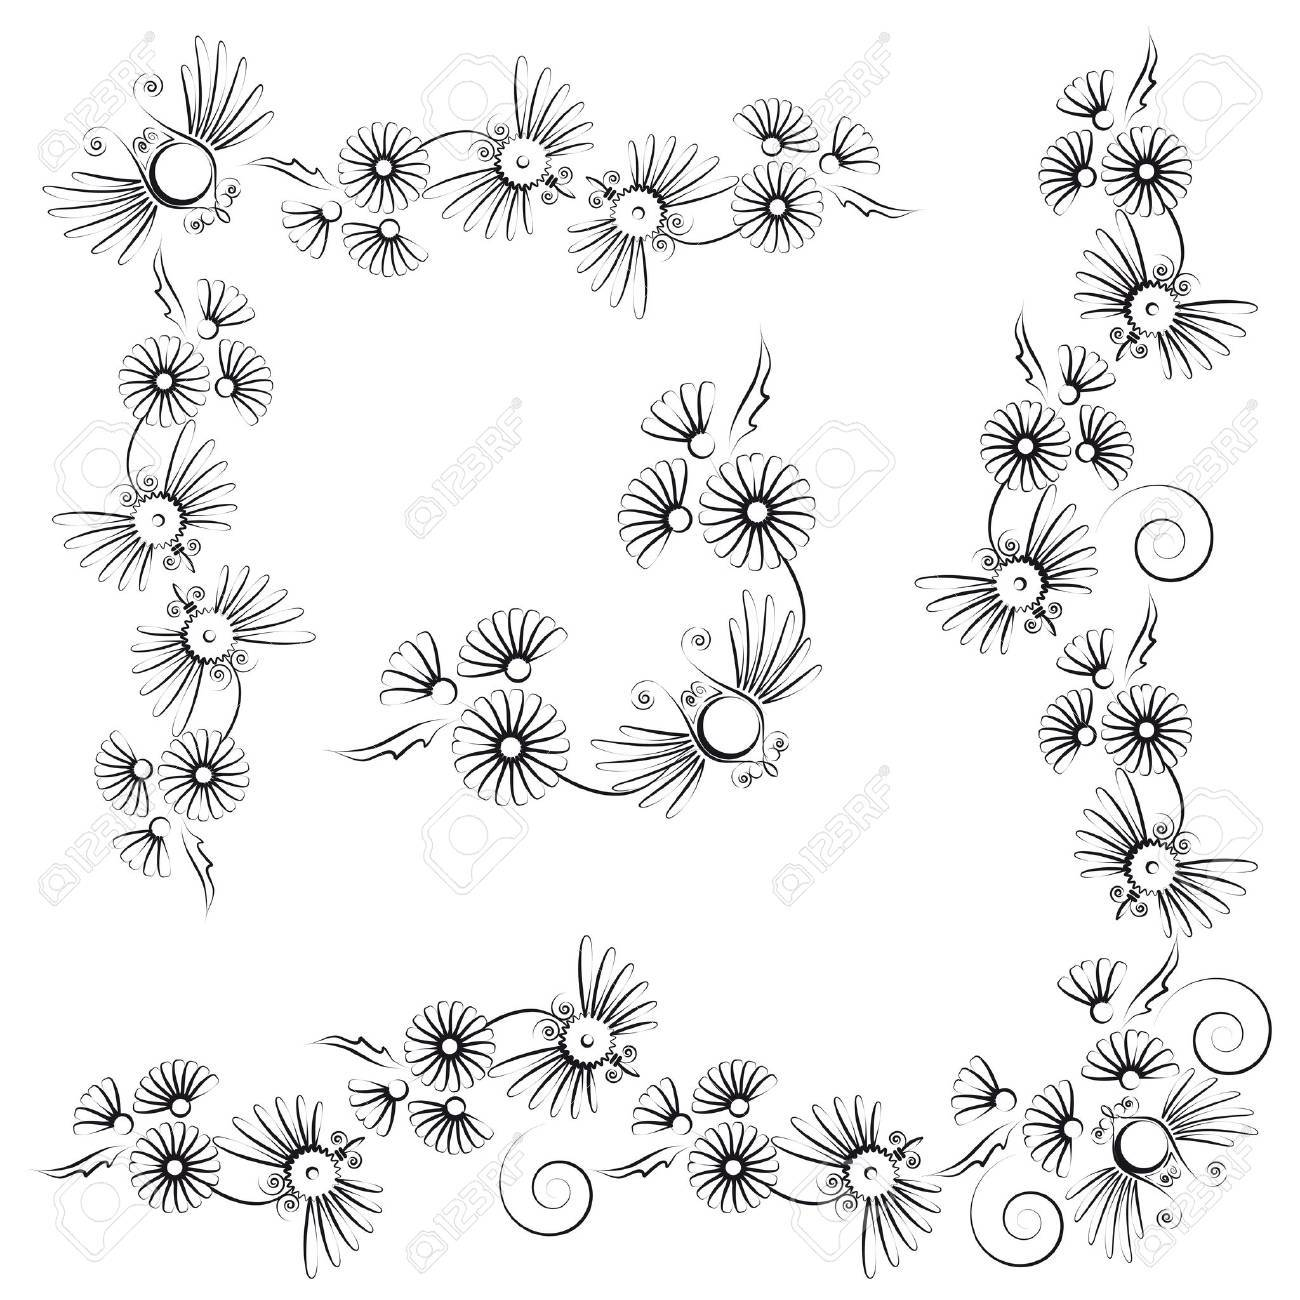 floral design with flowers and insects Stock Vector - 14747943